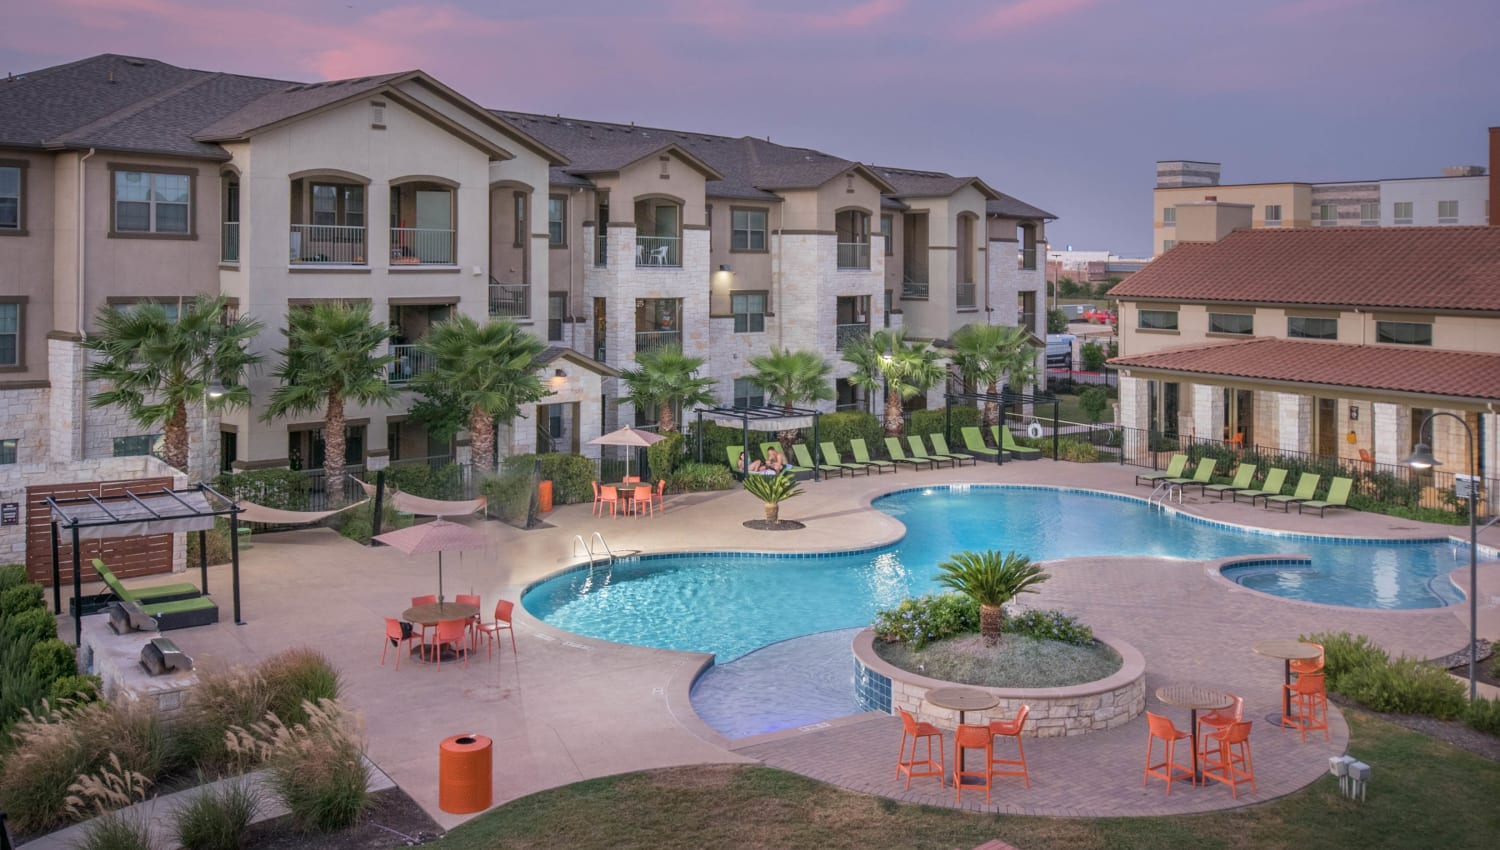 Early morning view of the pool area at Carrington Oaks in Buda, Texas